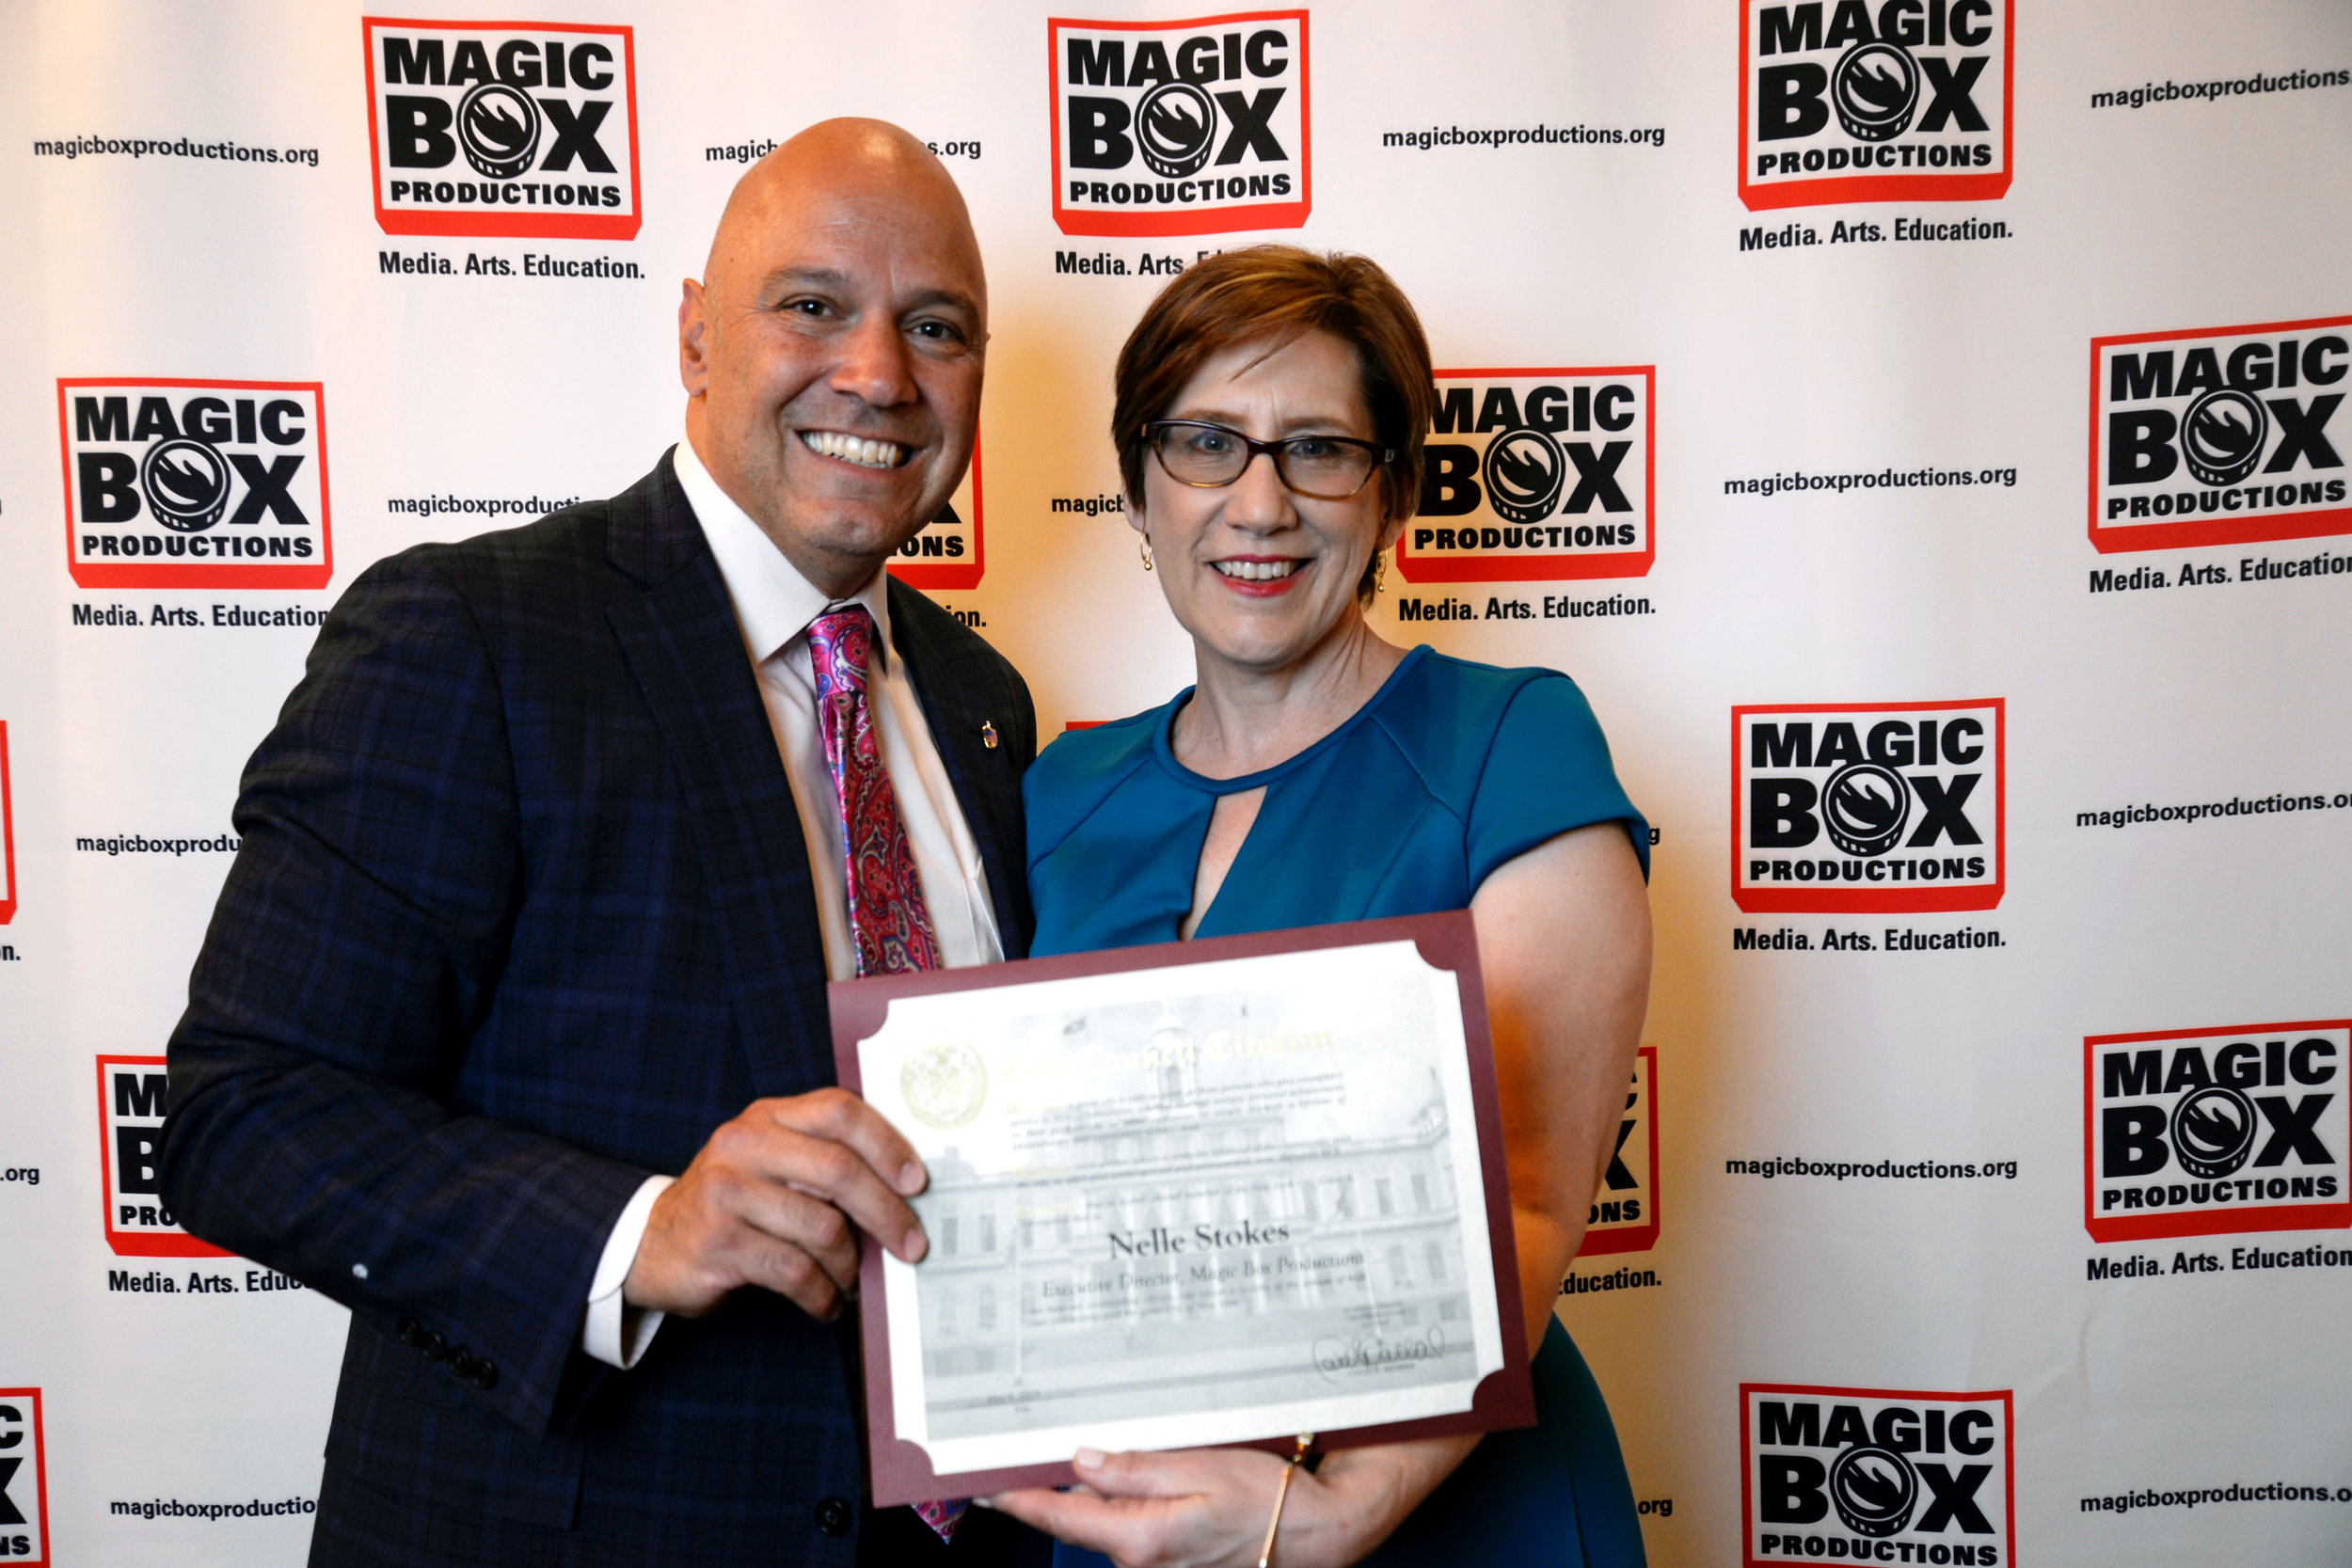 NYC Council Member Paul Vallone & Magic Box Executive Director Nelle Stokes